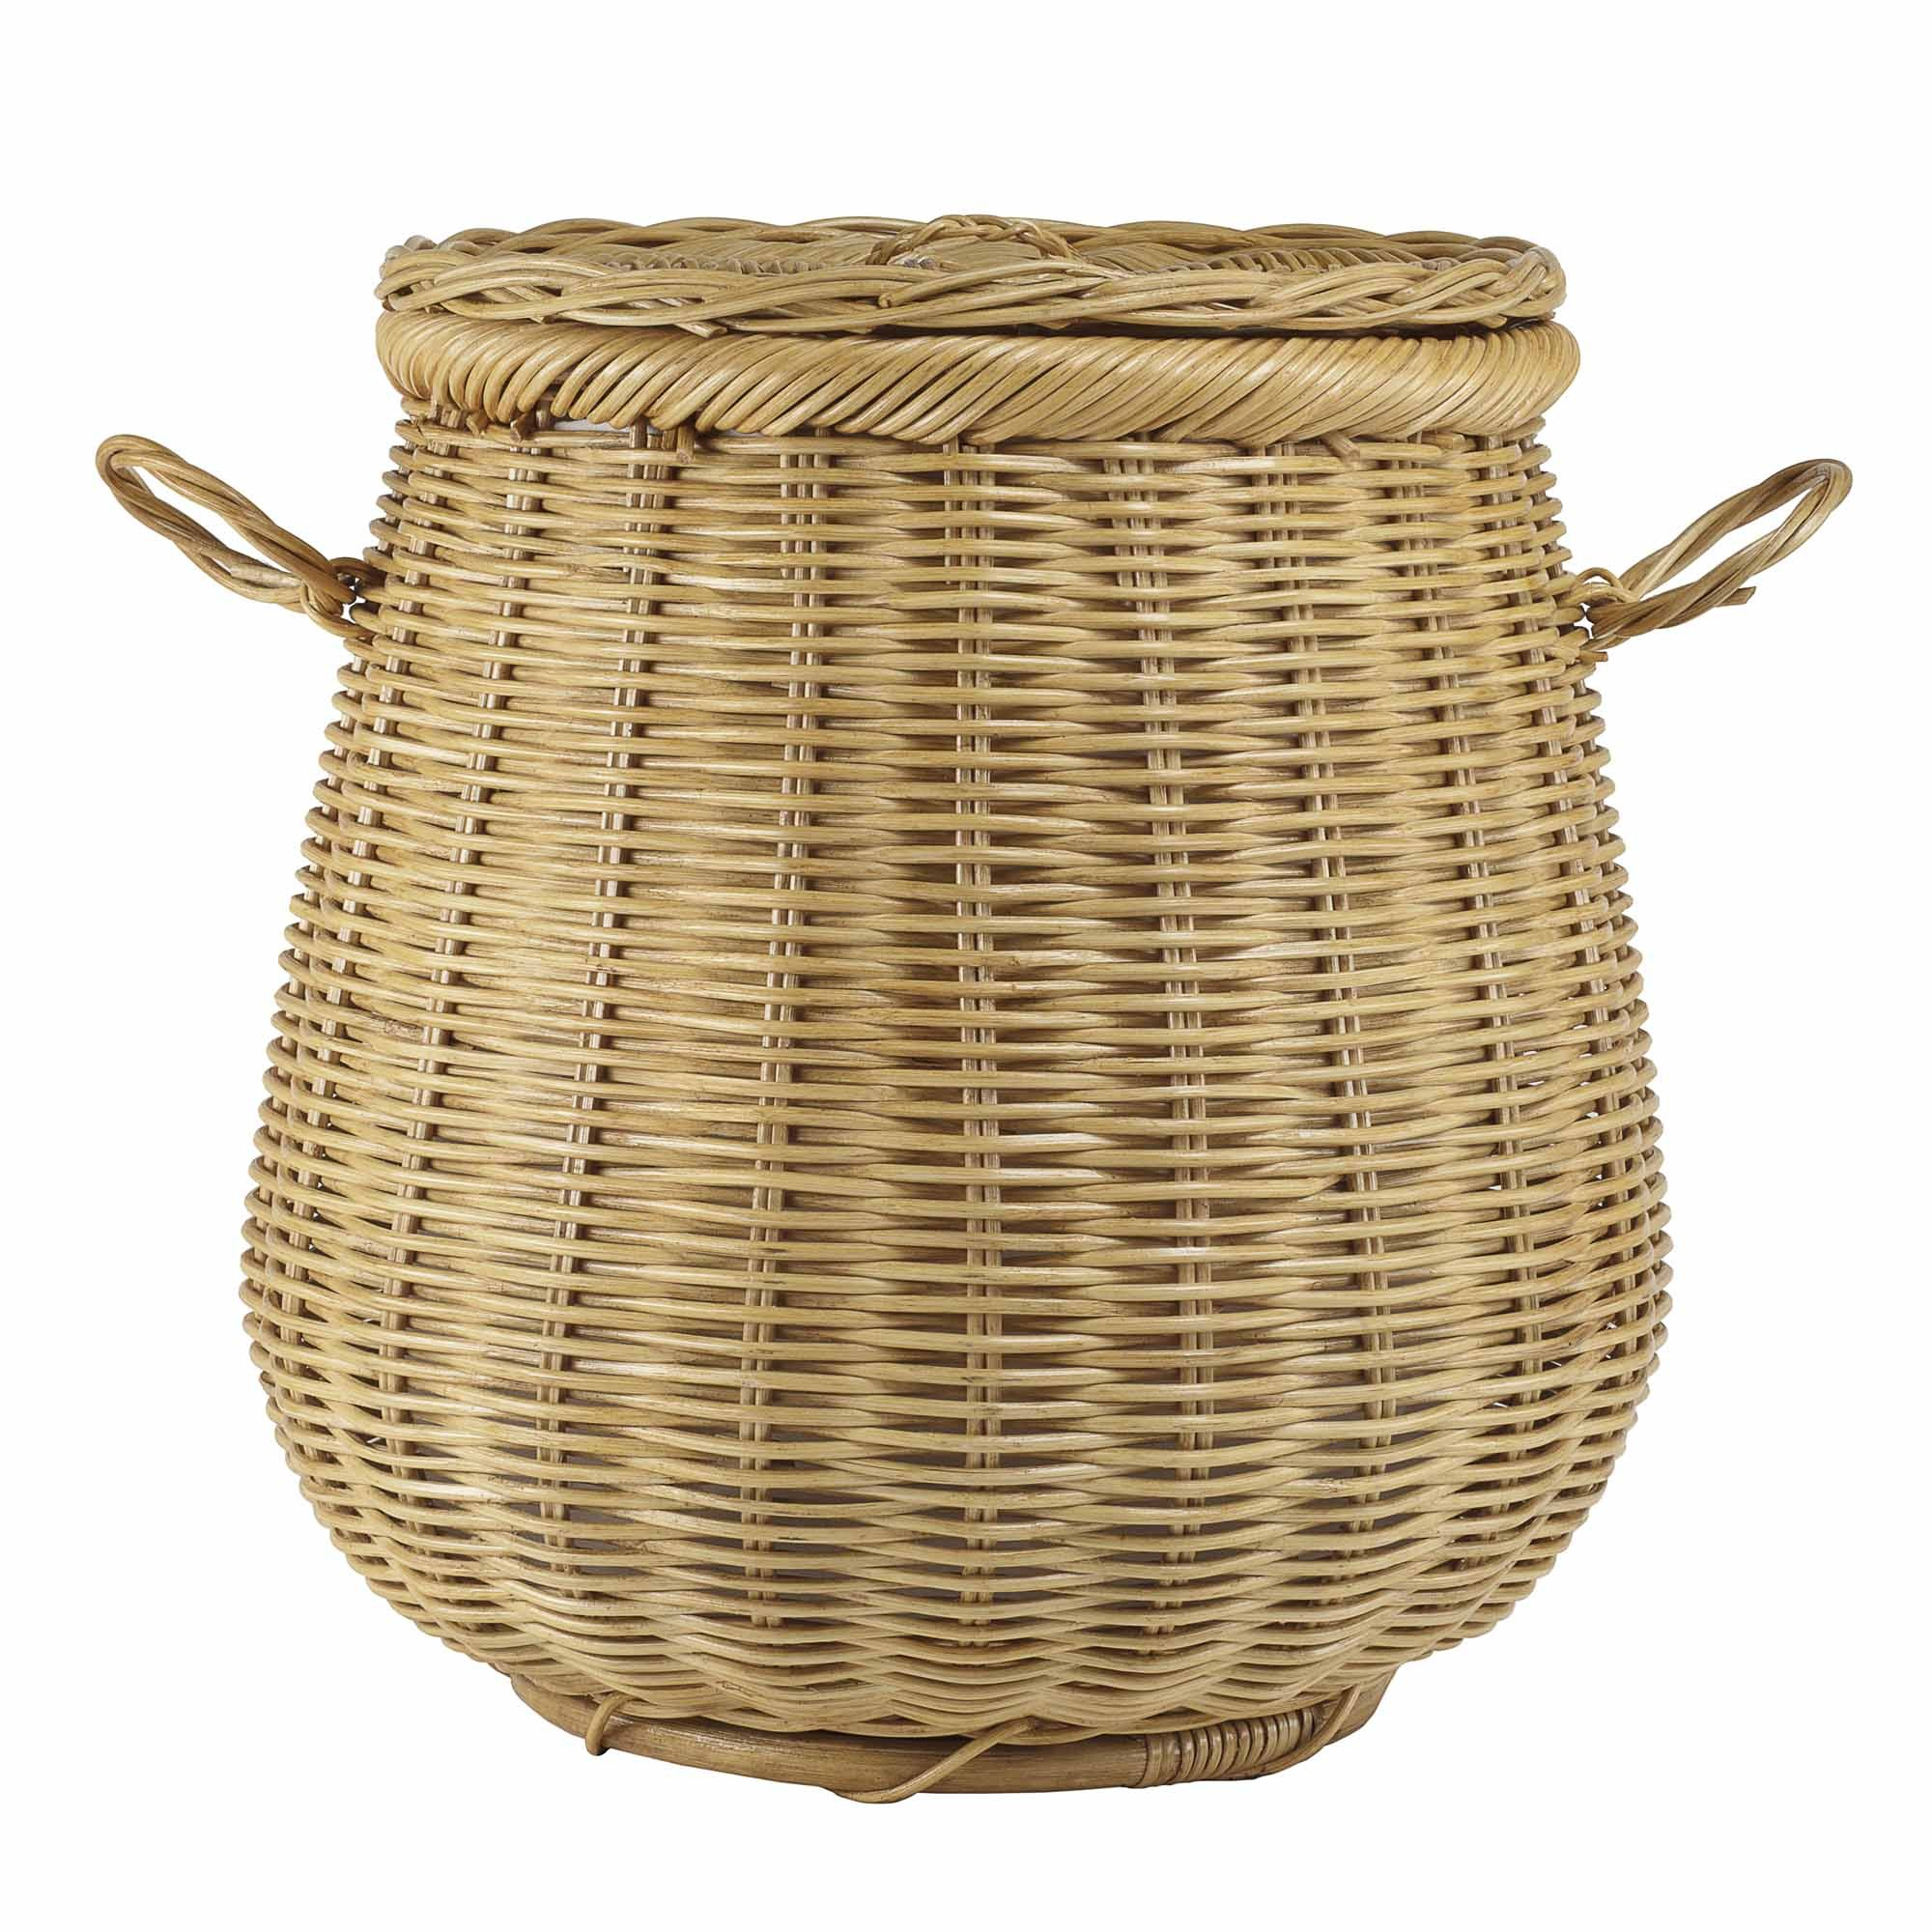 Wonderful Wicker Laundry Basket With Lid - Wicker Basket, Transparent background PNG HD thumbnail